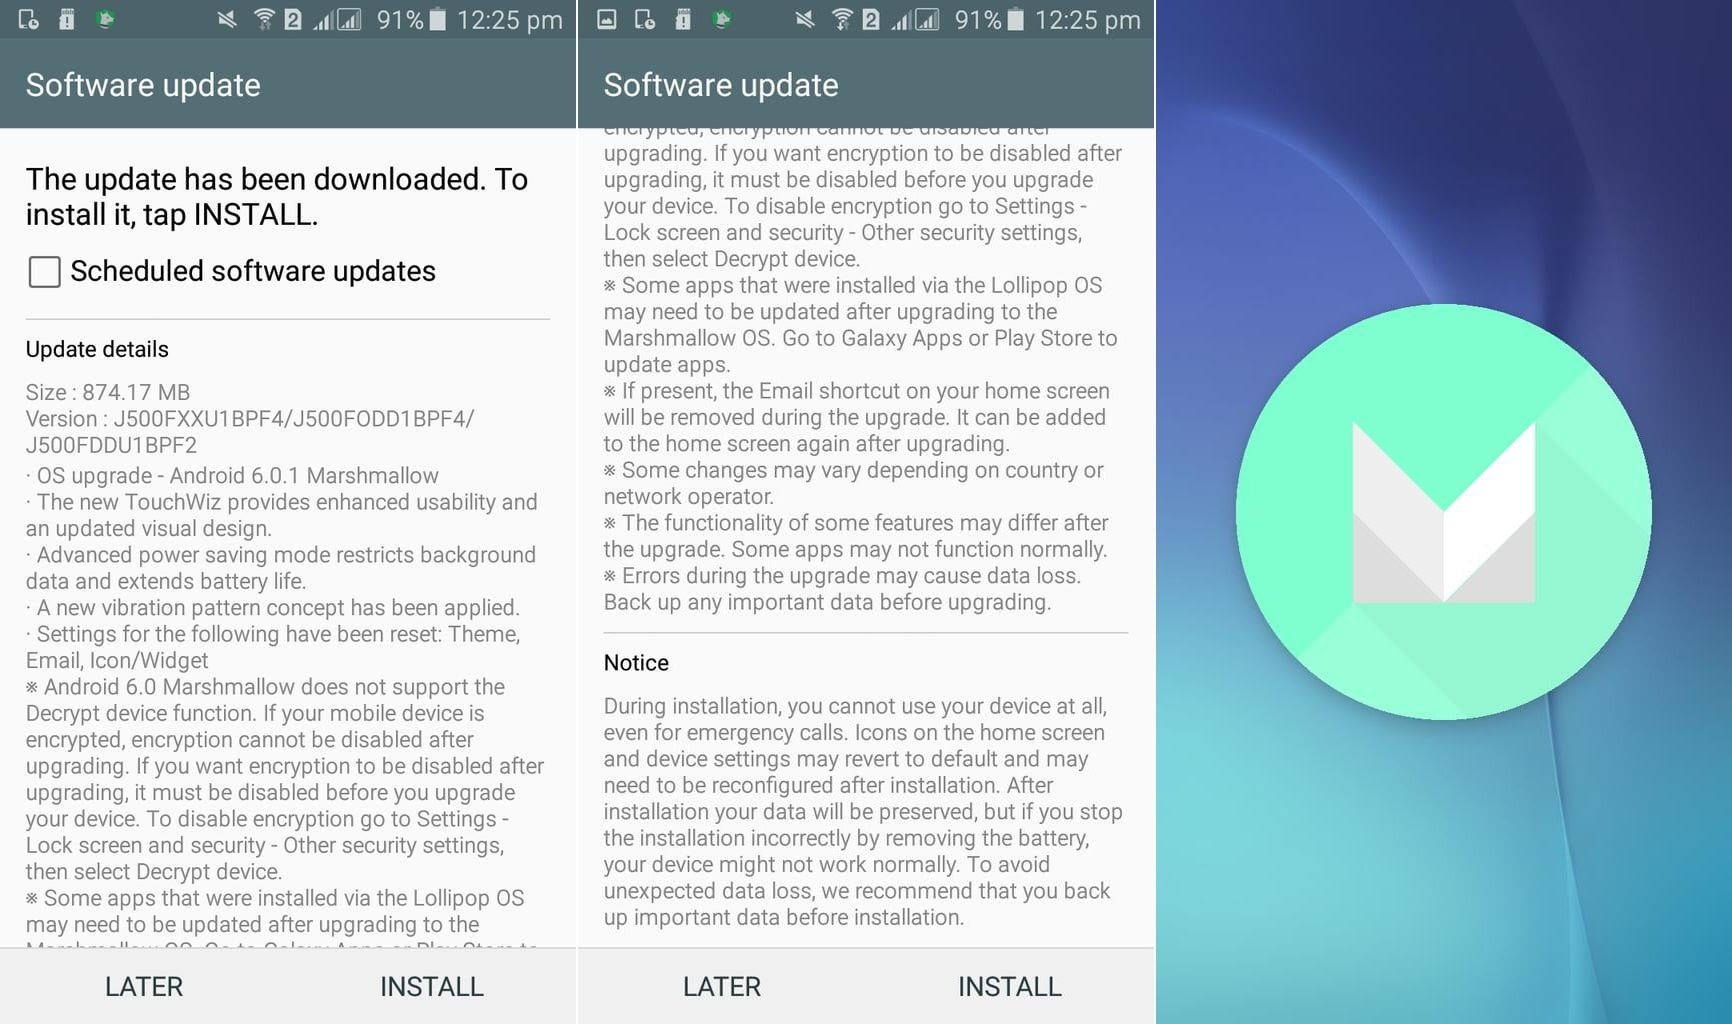 Samsung Galaxy J5 Android 6.0 Marshmallow changelog